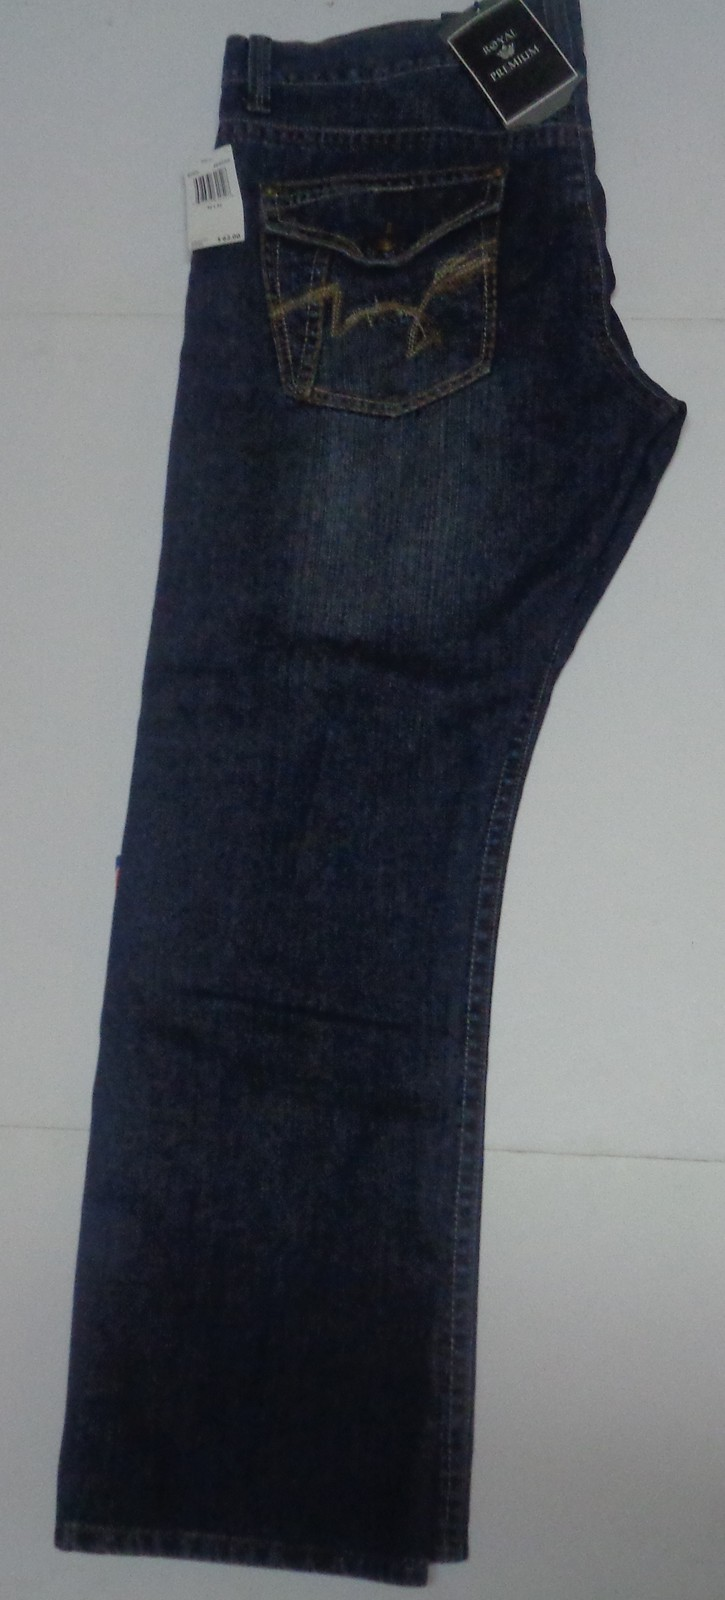 Royal Premium Men's Blue Jeans Sz 42 x 32 NWT